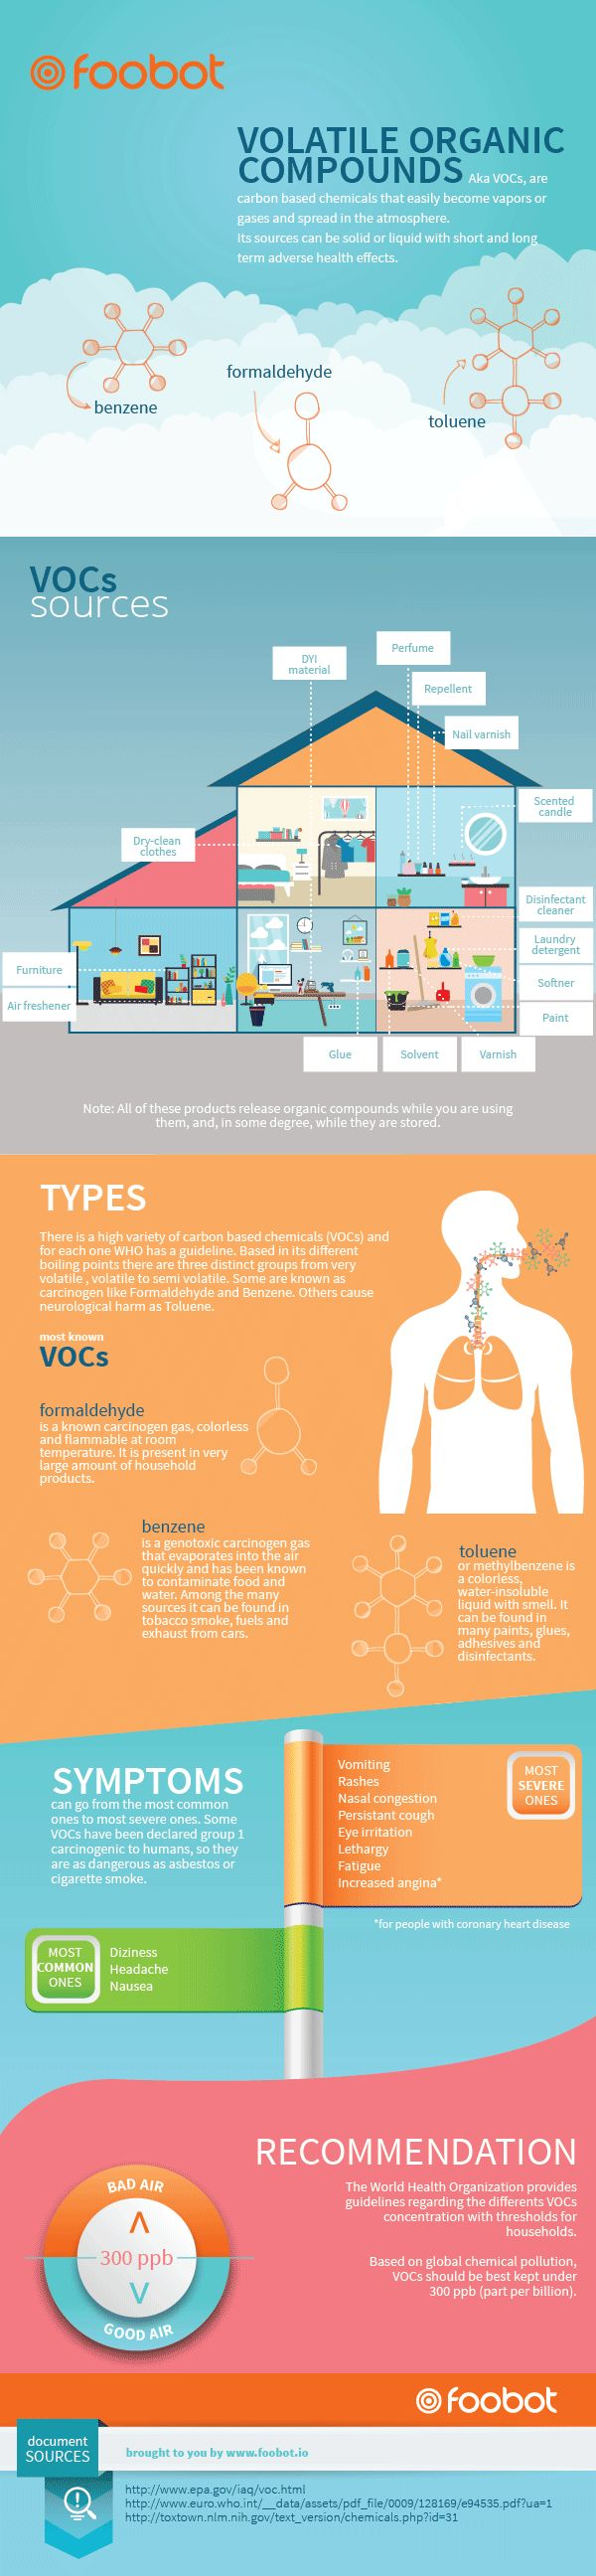 VOLATILE ORGANIC COMPOUNDS_Foobot_infographic_VOCs